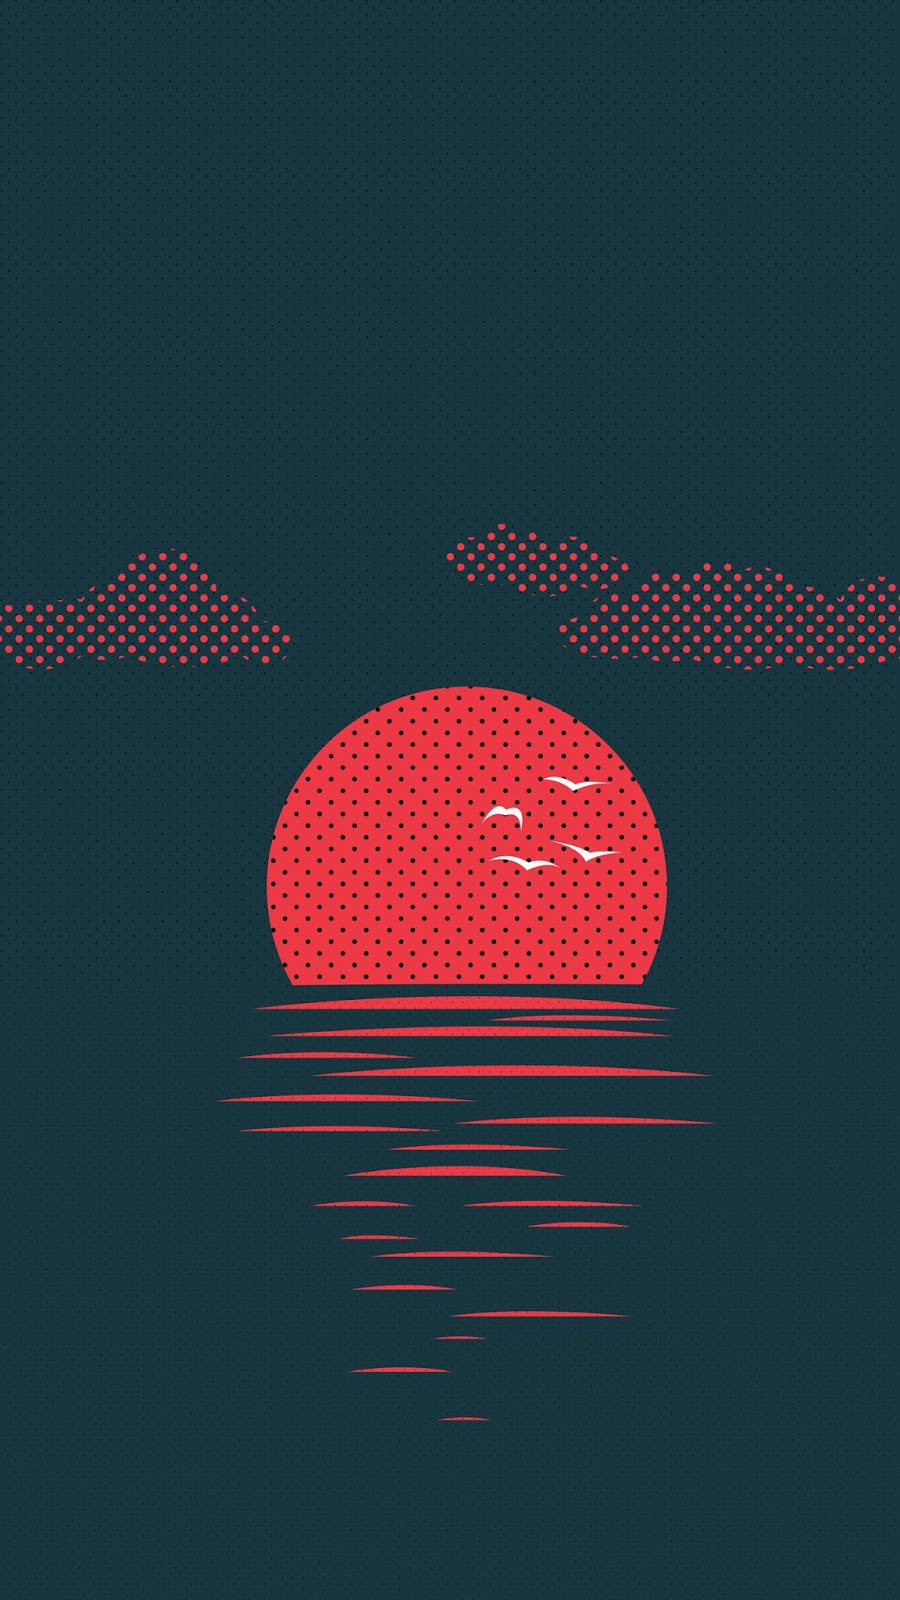 Sunset minimalist wallpaper